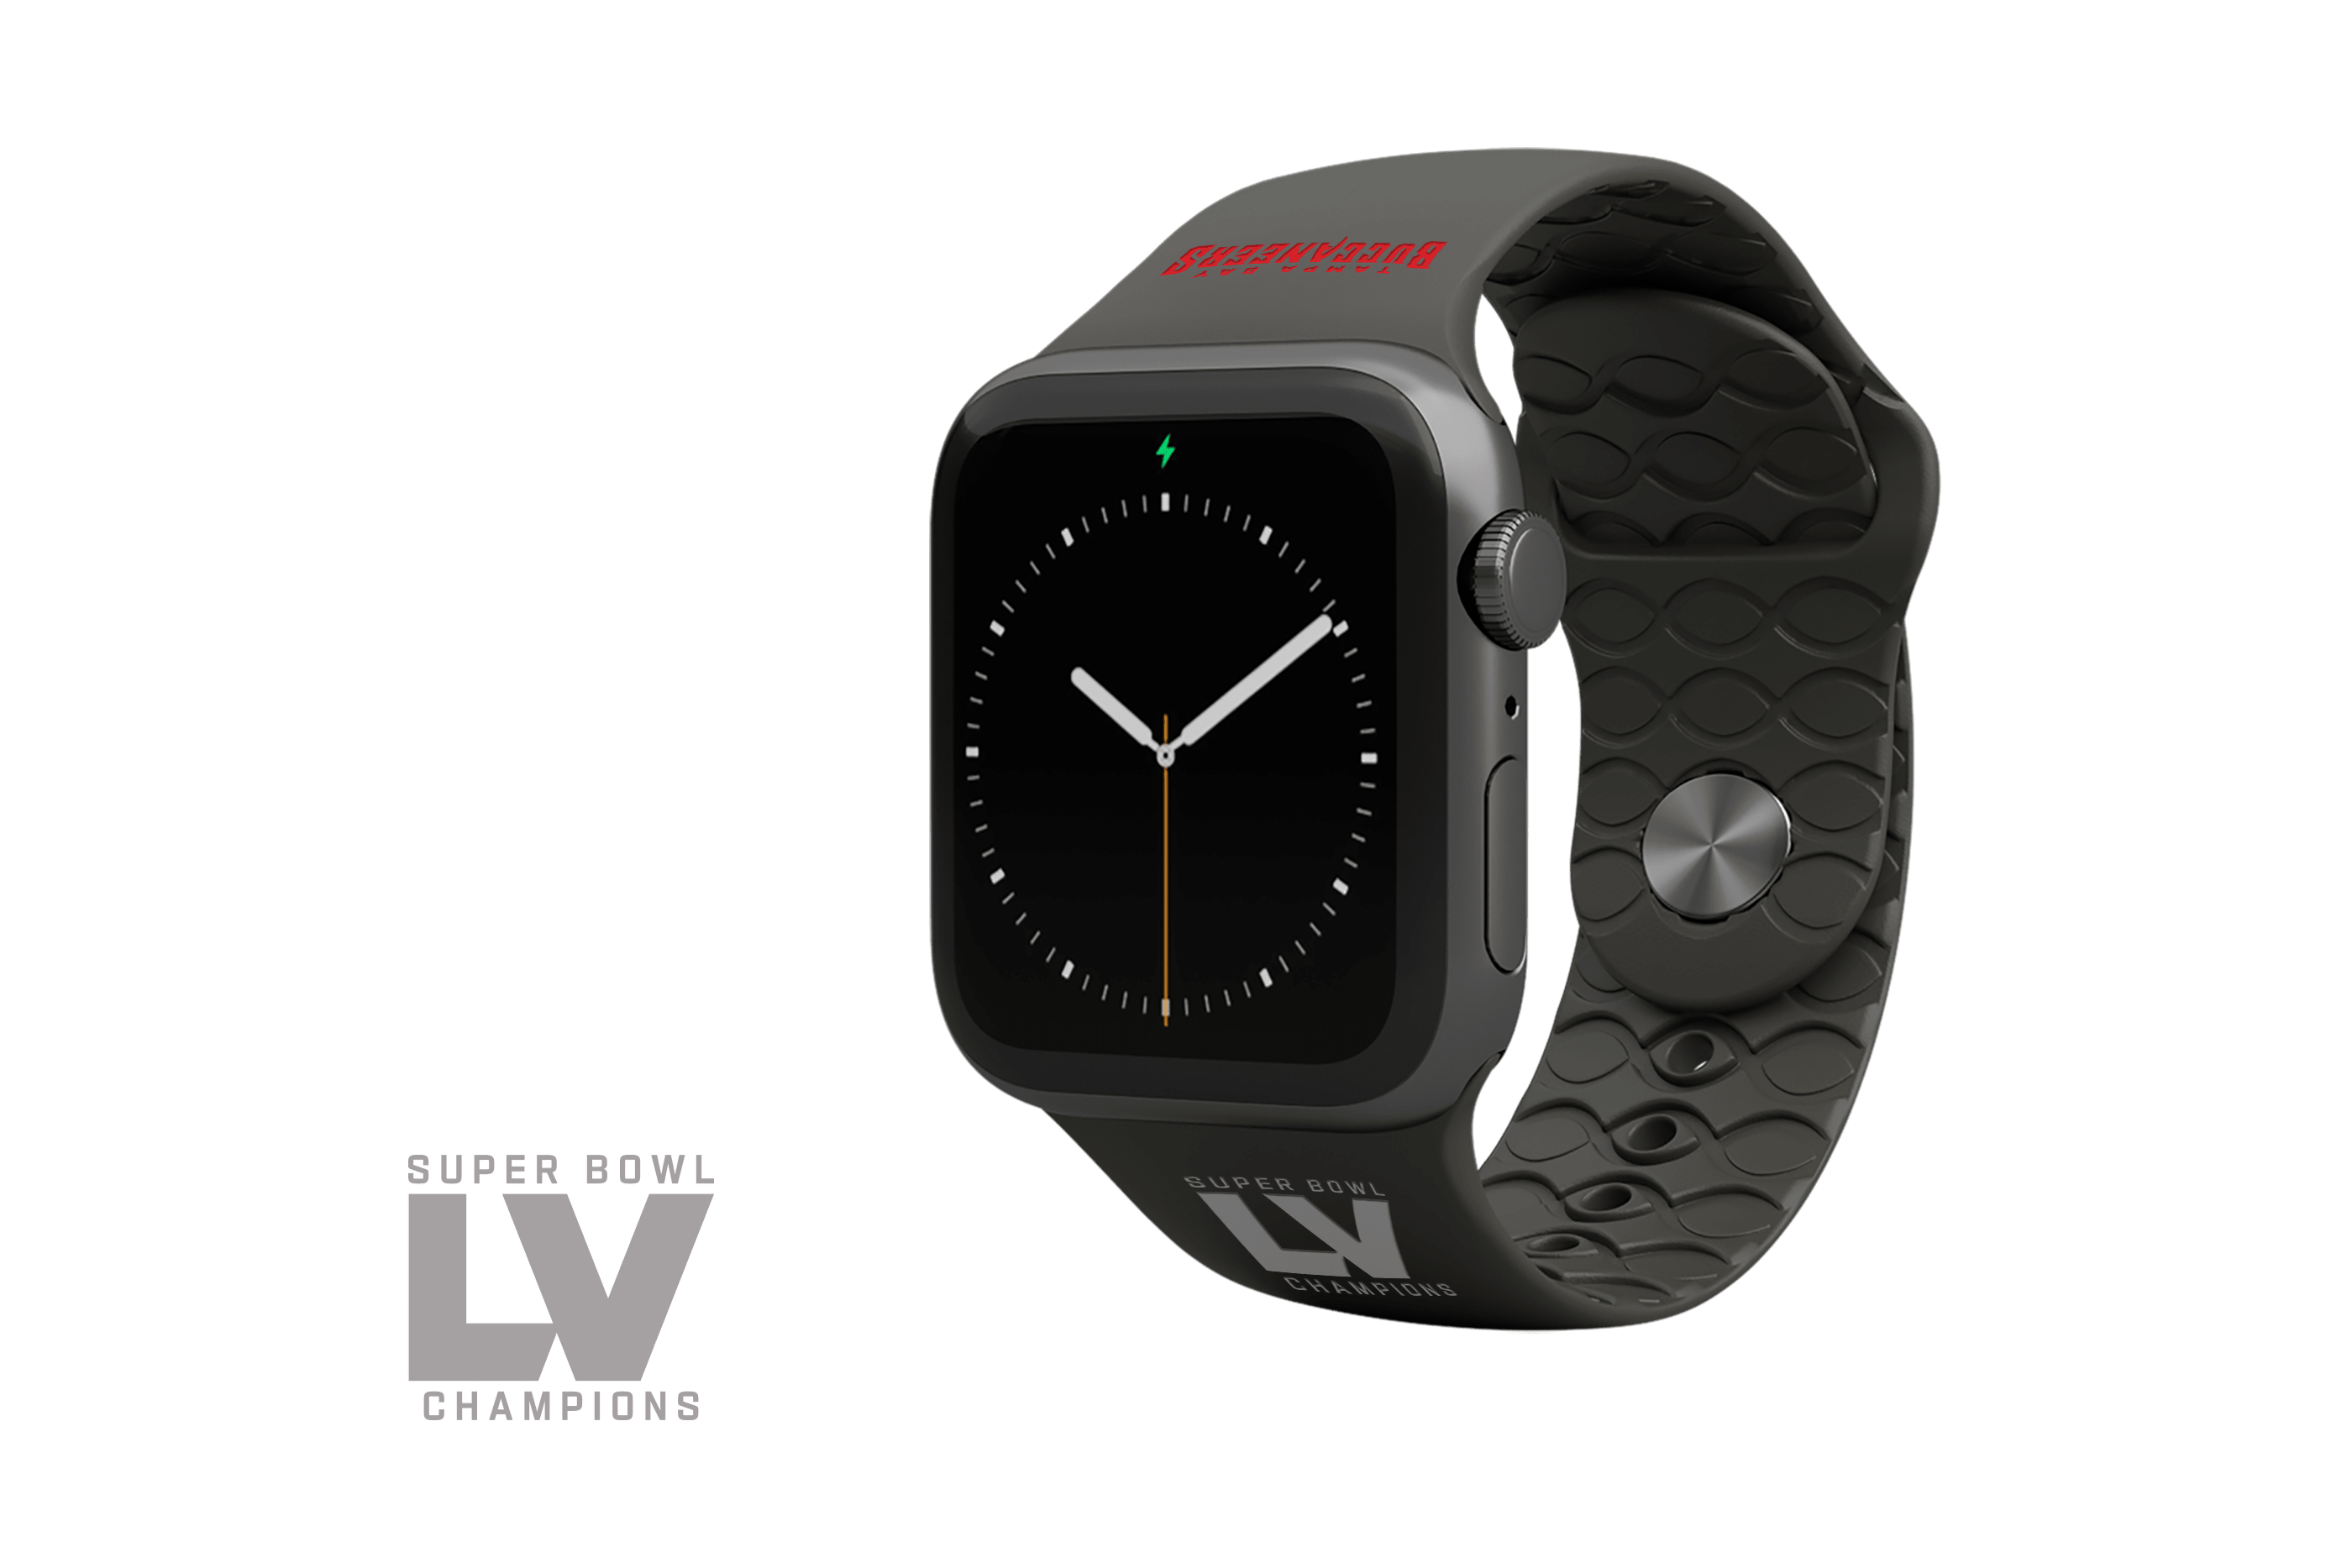 Limited Edition NFL Tampa Bay Buccaneers Super Bowl LV Fan Apple Watch Band with gray hardware viewed front on